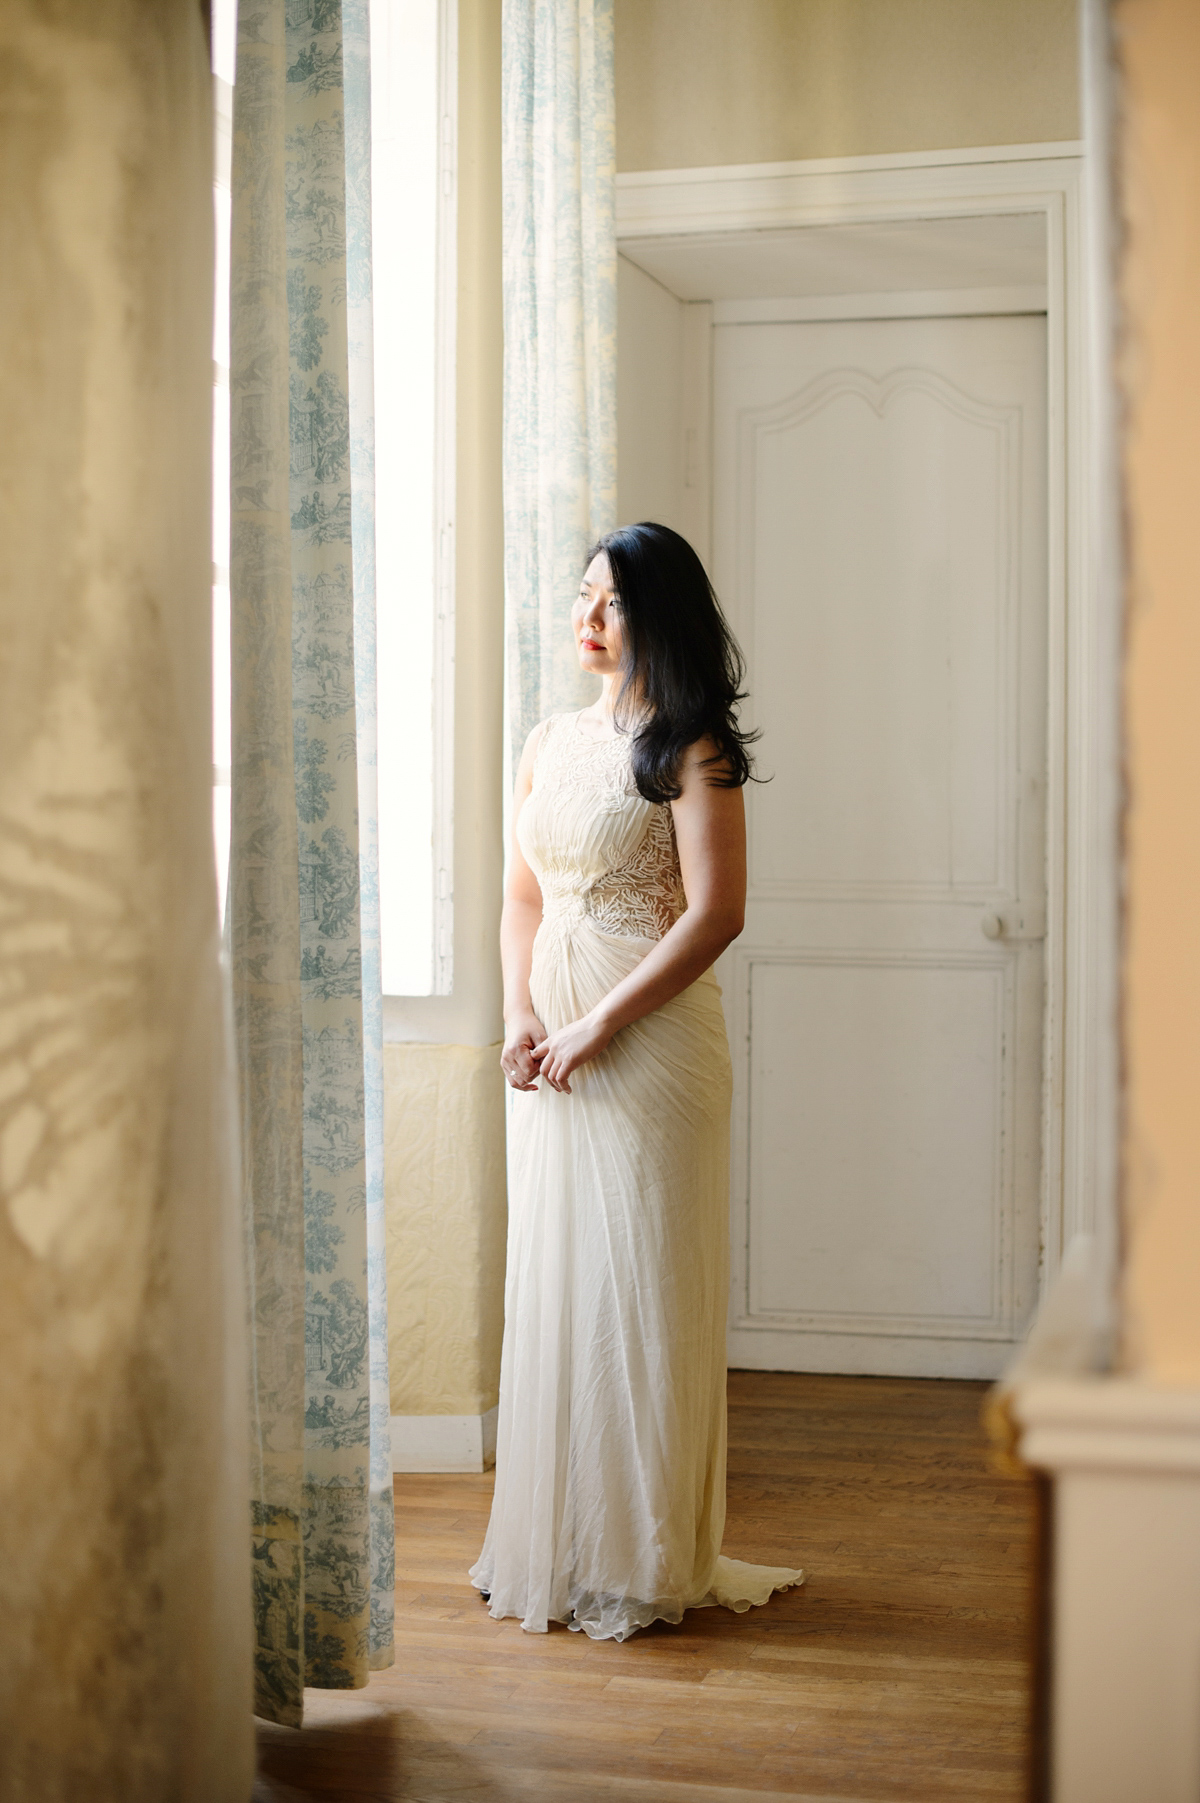 A Tadashi Shoji Gown for a Charming Wedding in the French Countryside (Weddings )